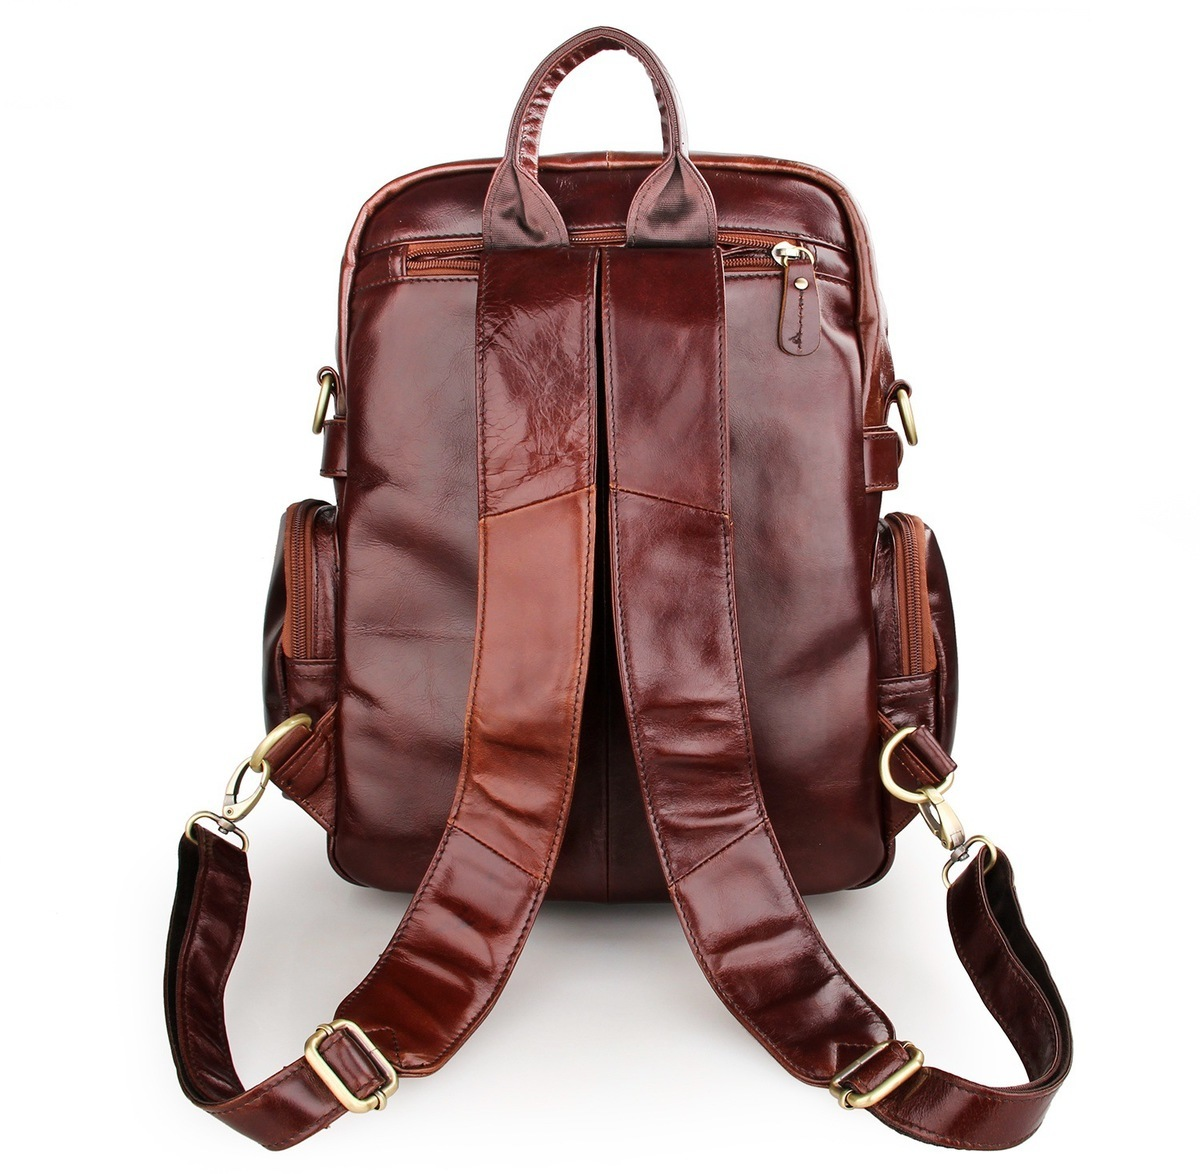 Escalade Sac Vache Loisirs Ordinateur Cuir Dos Hommes Étanche D'affaires Portable De Fonctionnel Brownish brown En Luxe Mochila Voyage Mâle À Red qS1wYfTnSr